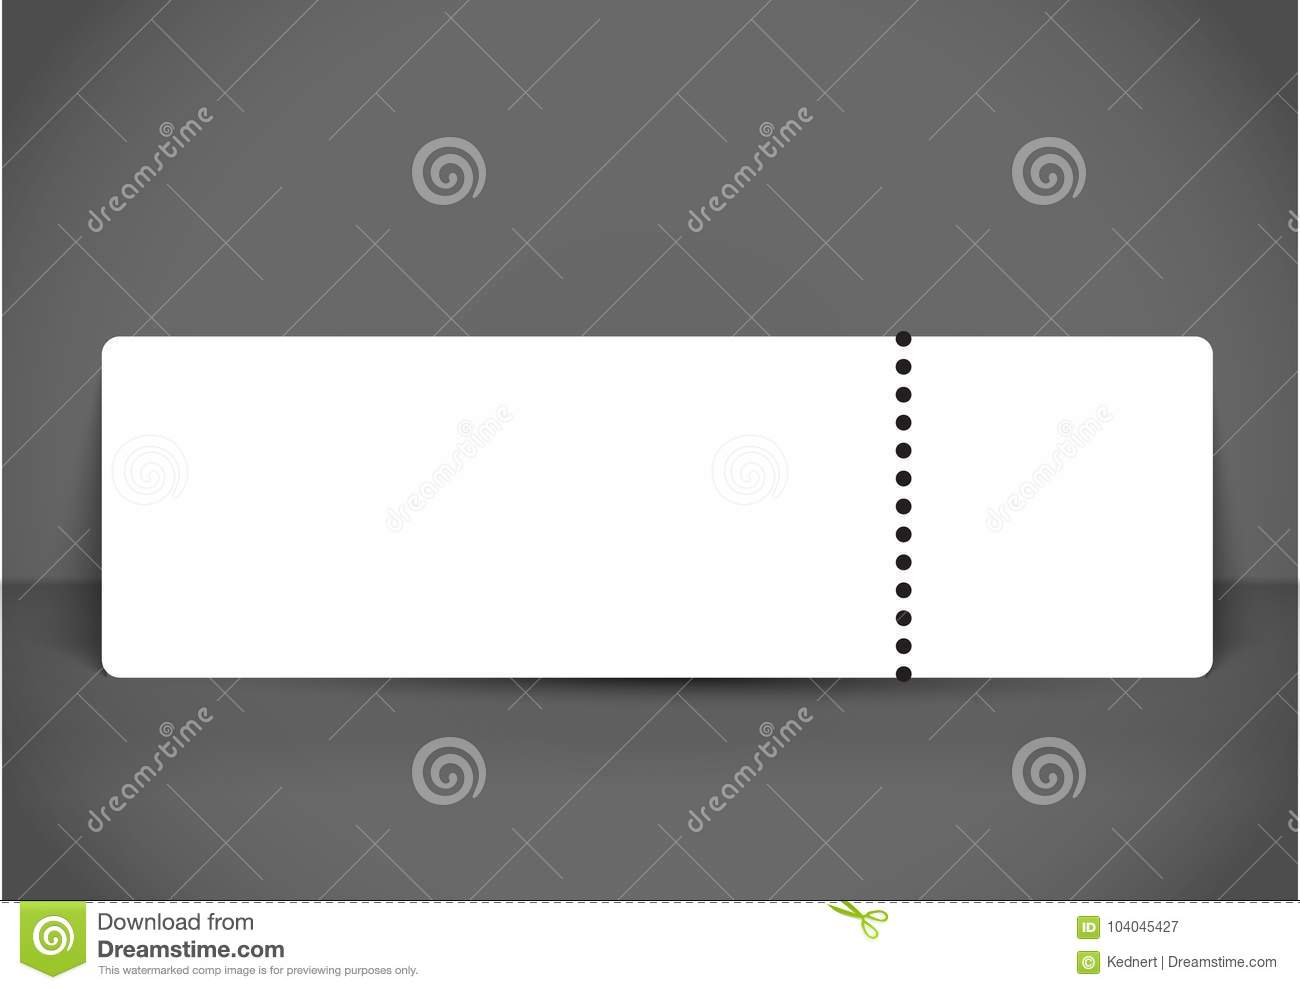 blank event concert ticket mockup template  concert  party